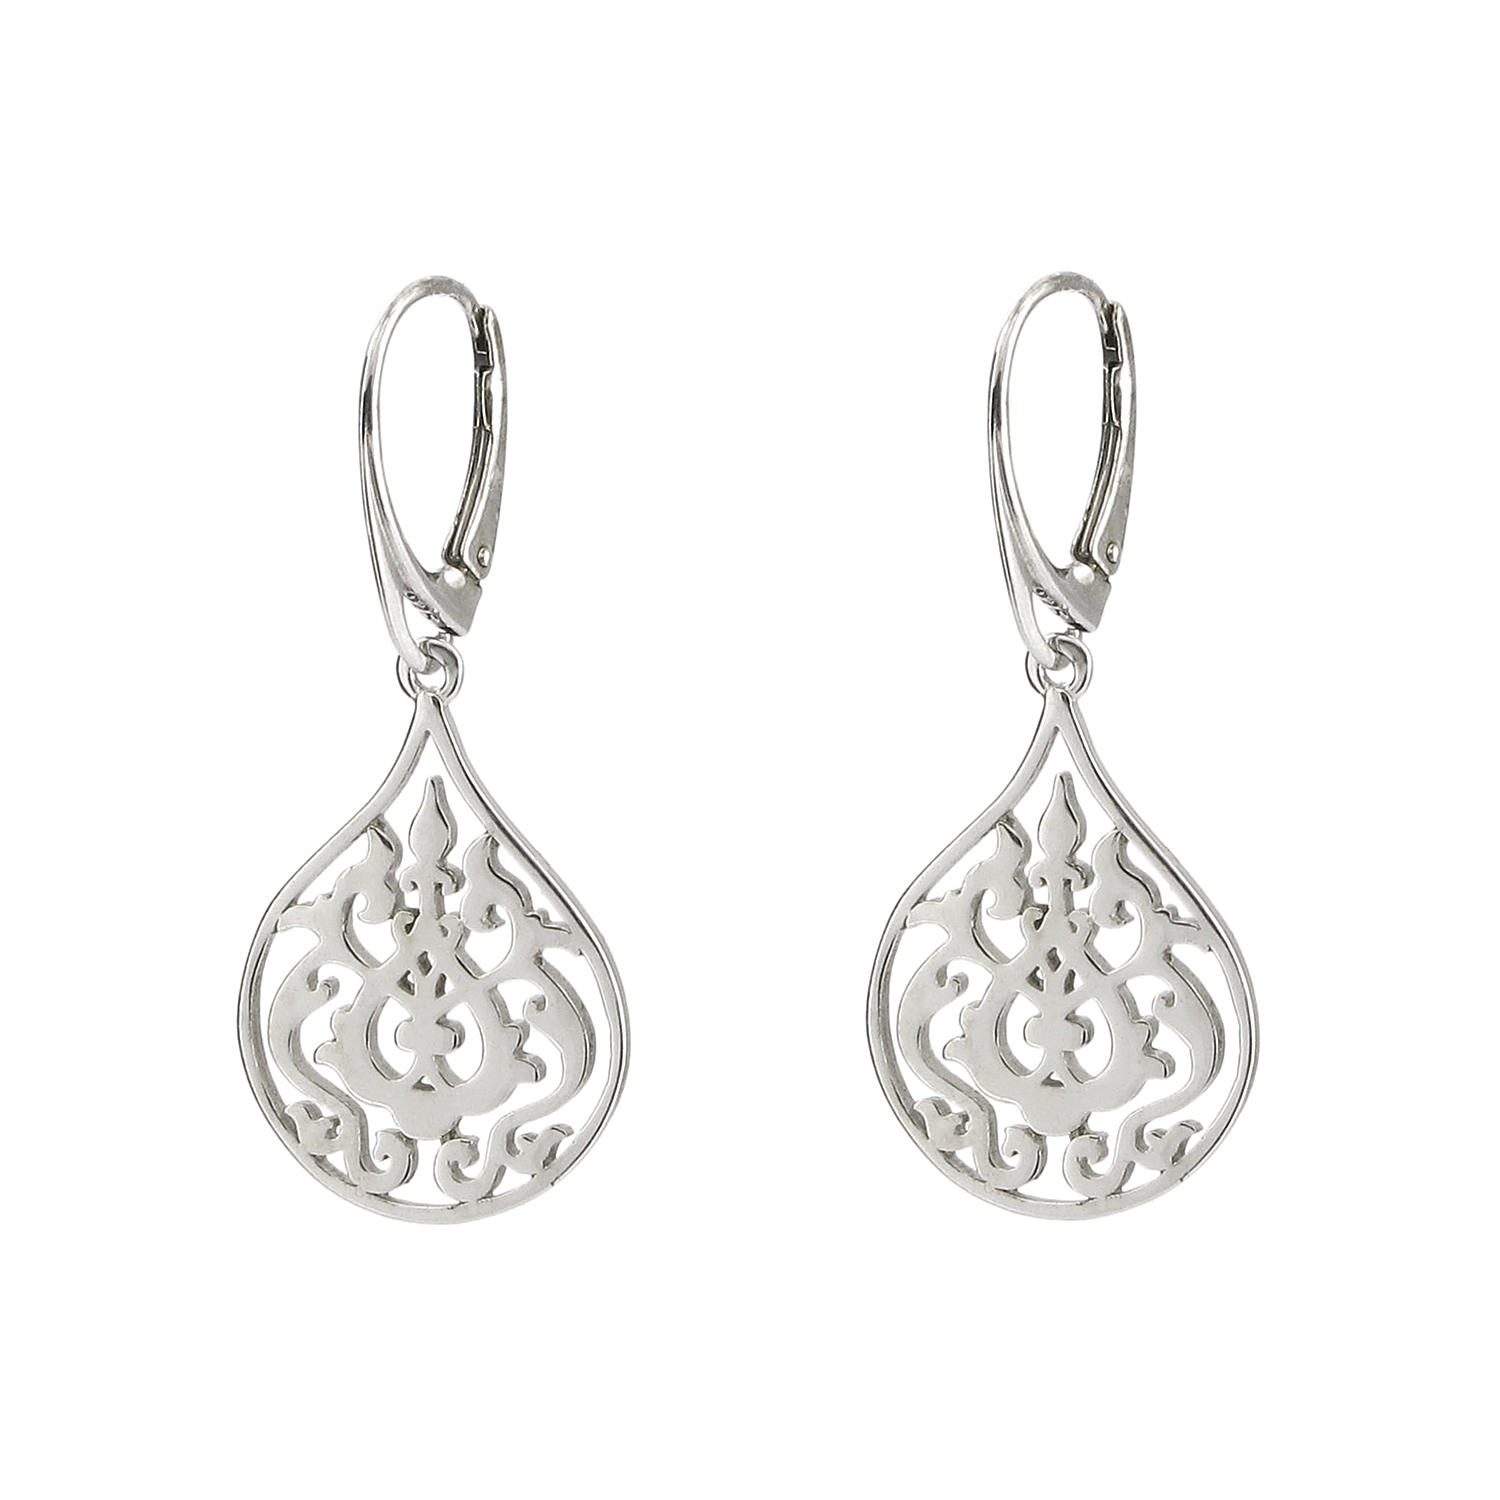 Silver arabesque floral earrings